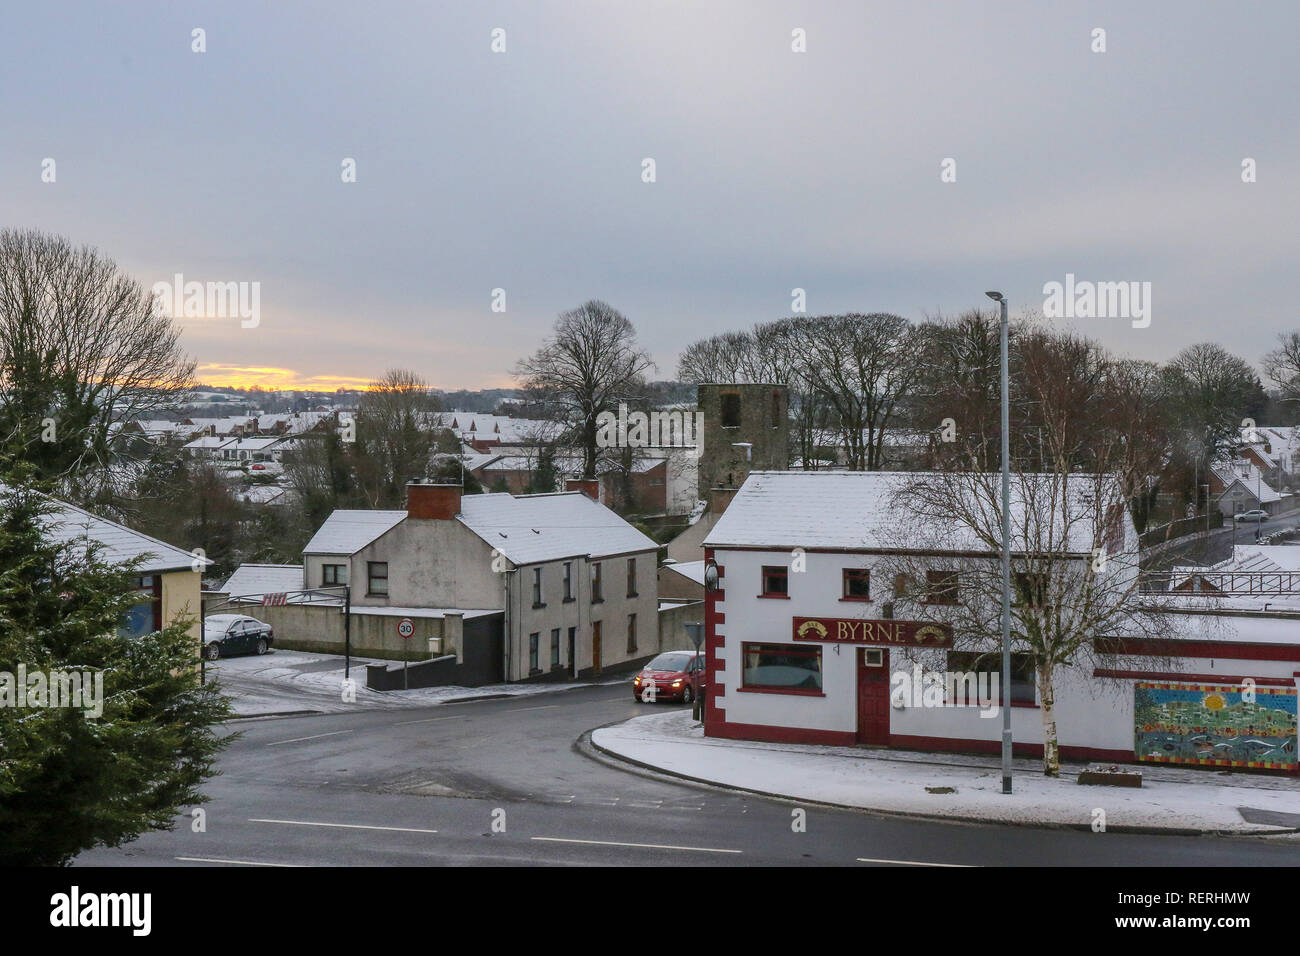 Magheralin, County Armagh, Northern, Ireland. 23rd Jan, 2019. Snow and ice made for tricky driving conditions off main roads. Sun rising over snow-covered hills to the east of the village. Credit: David Hunter/Alamy Live News - Stock Image